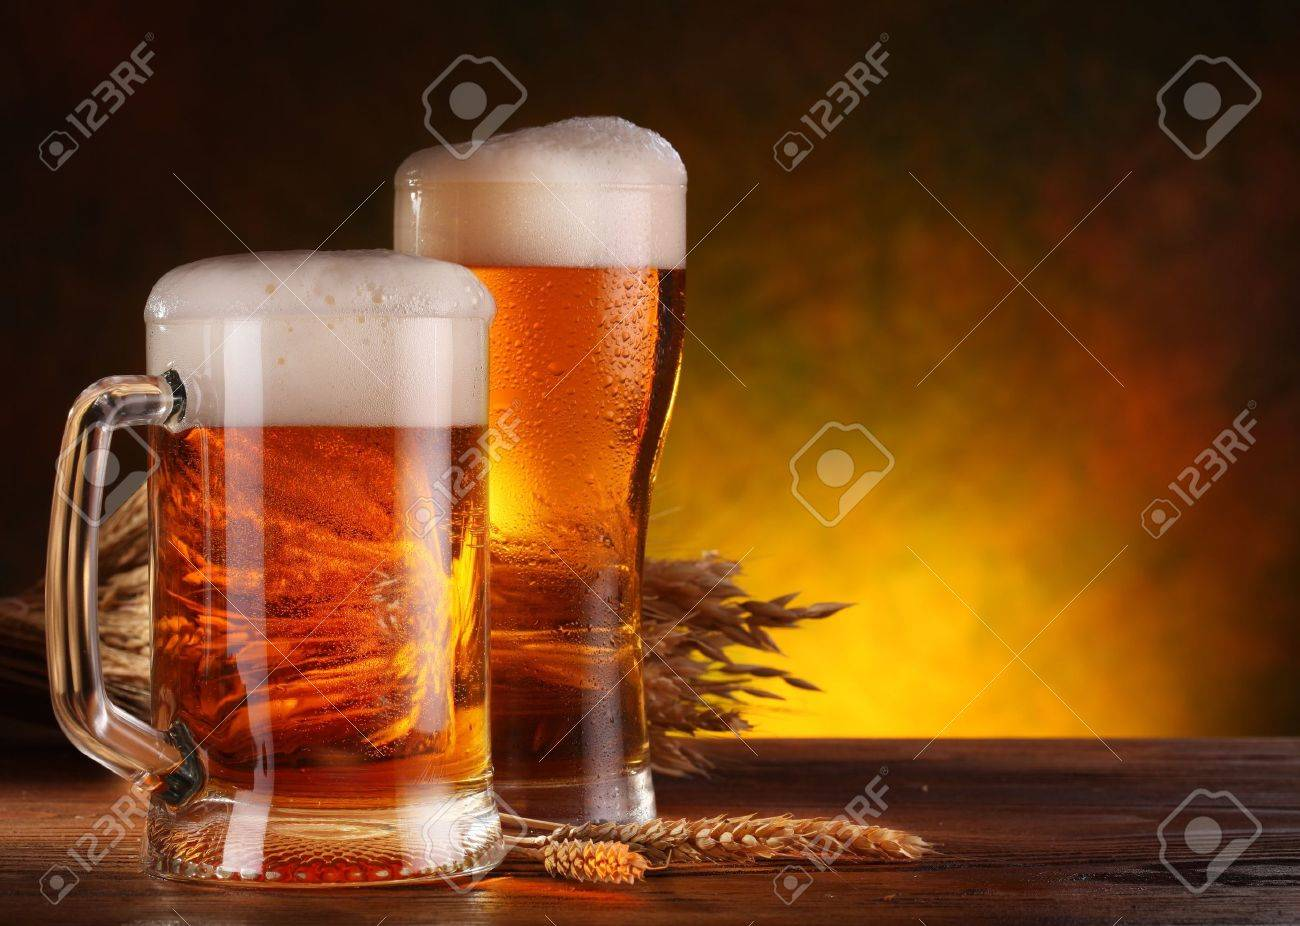 Still Life with a draft beer by the glass. Stock Photo - 11373552